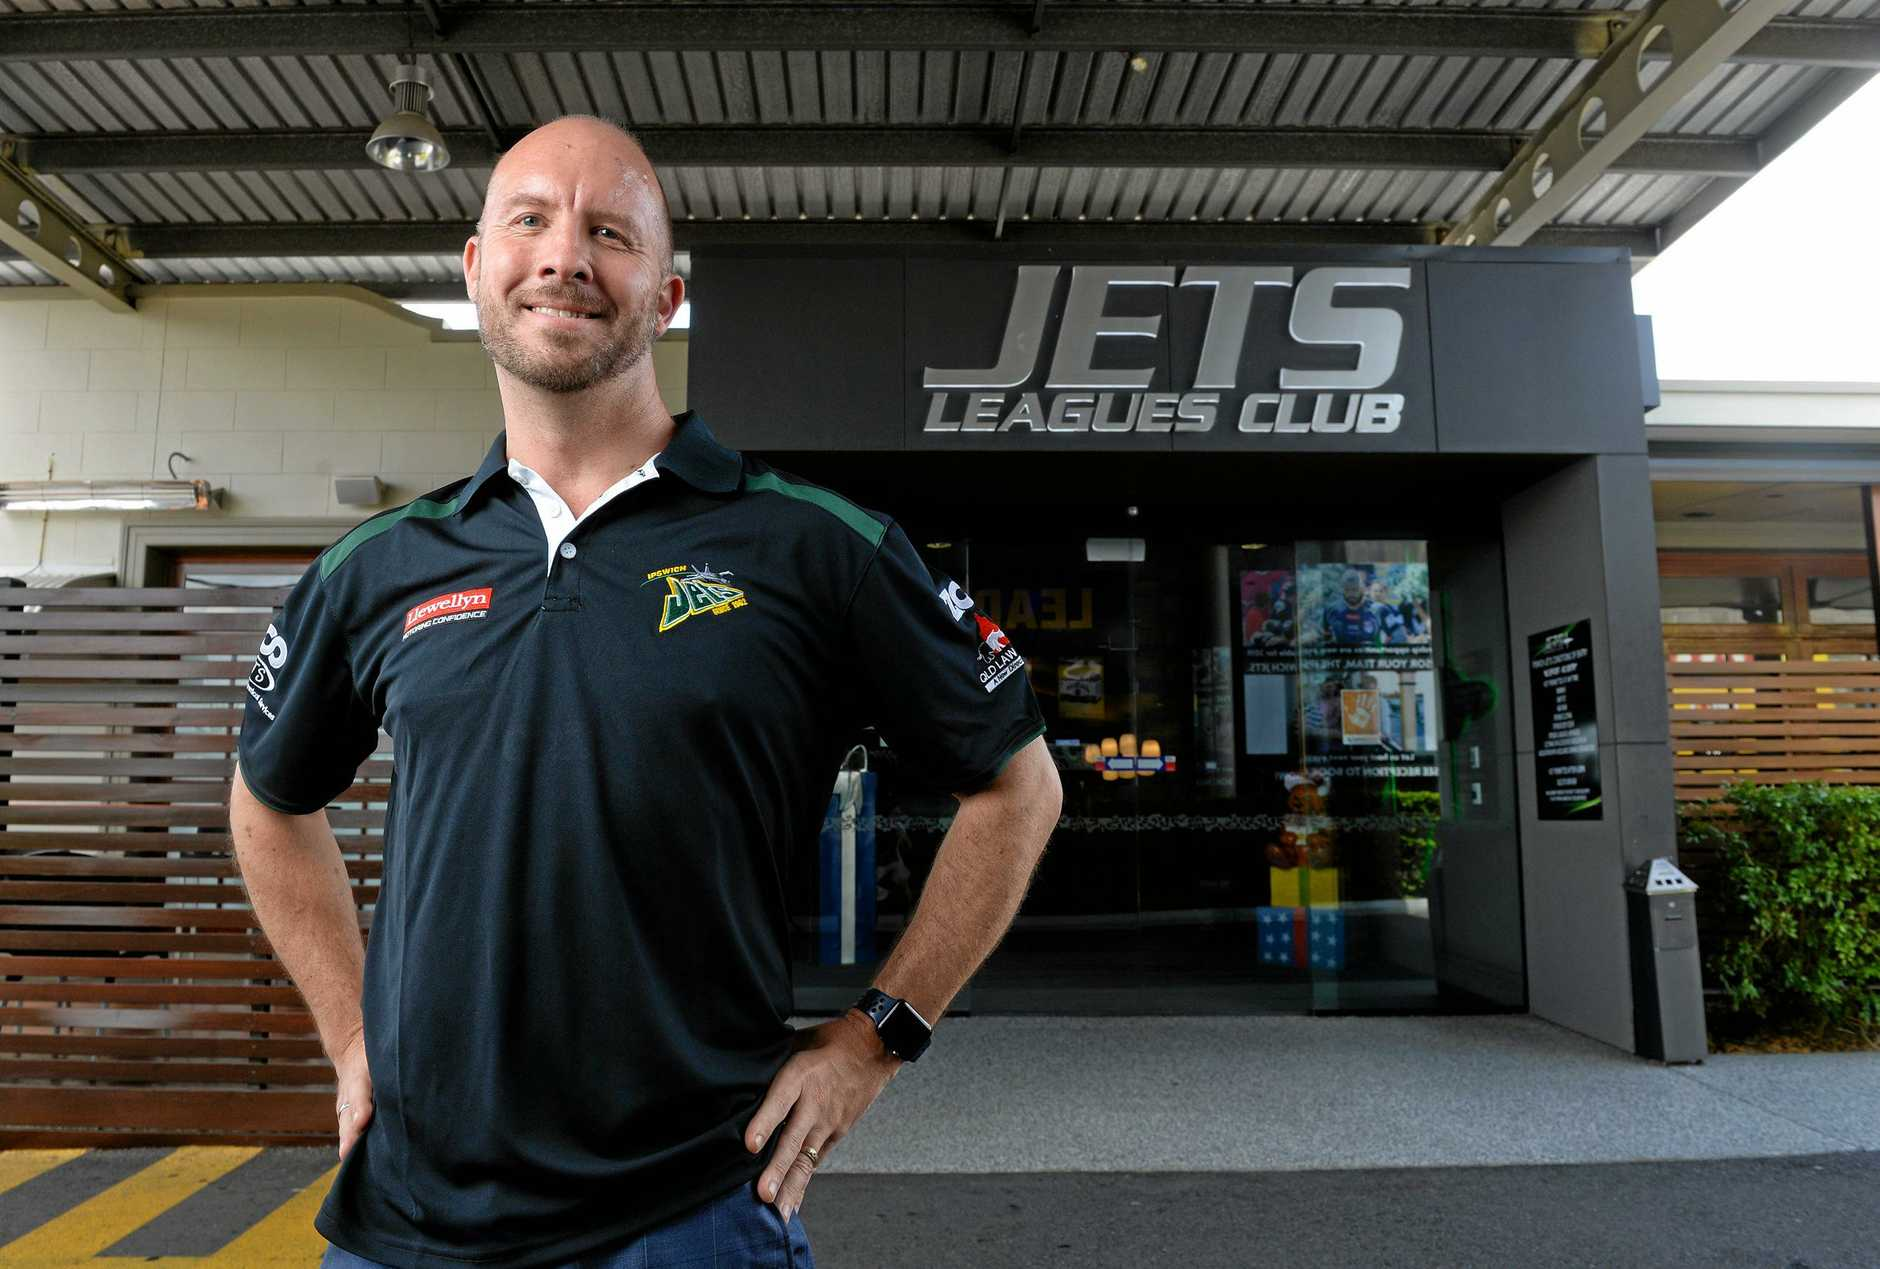 The new Ipswich Jets CEO for 2019 is Richard Hughes.